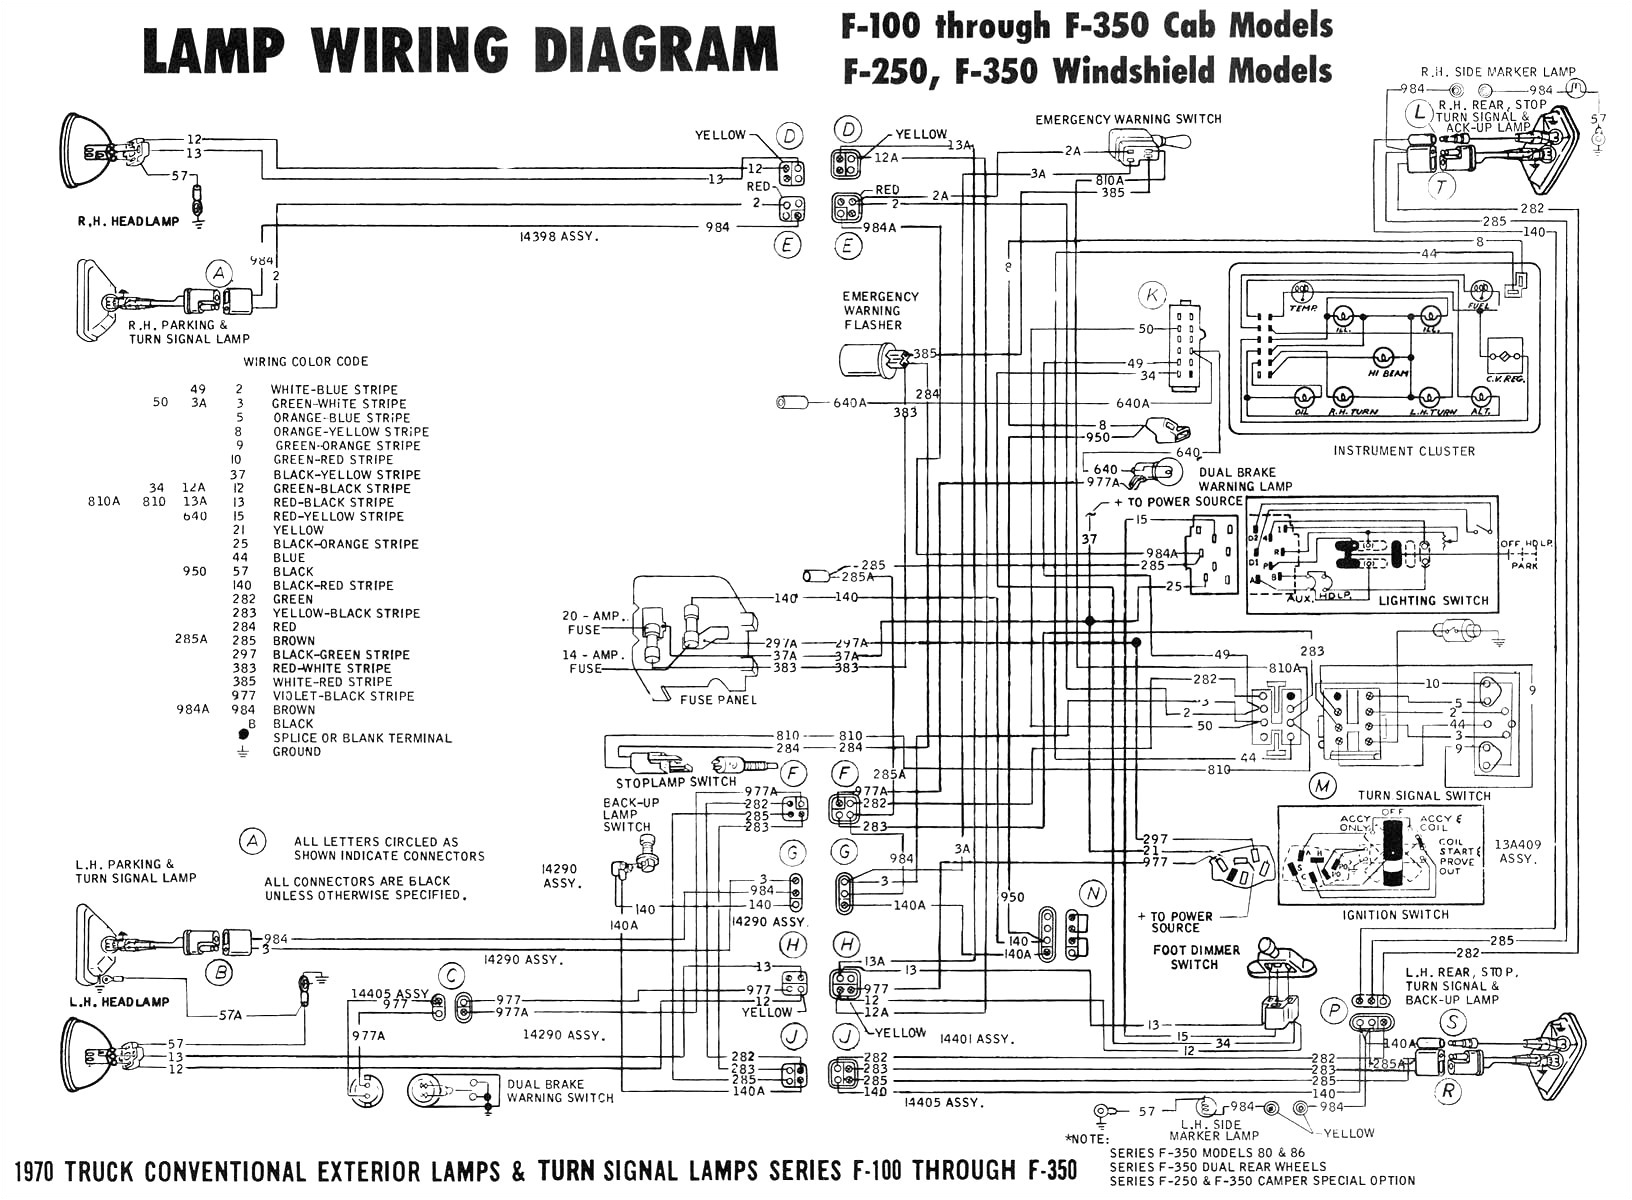 fuse diagram 1994 ford ranger autos post new wiring diagram 1994 chev pick up fuse diagram autos weblog source 94 chevy truck